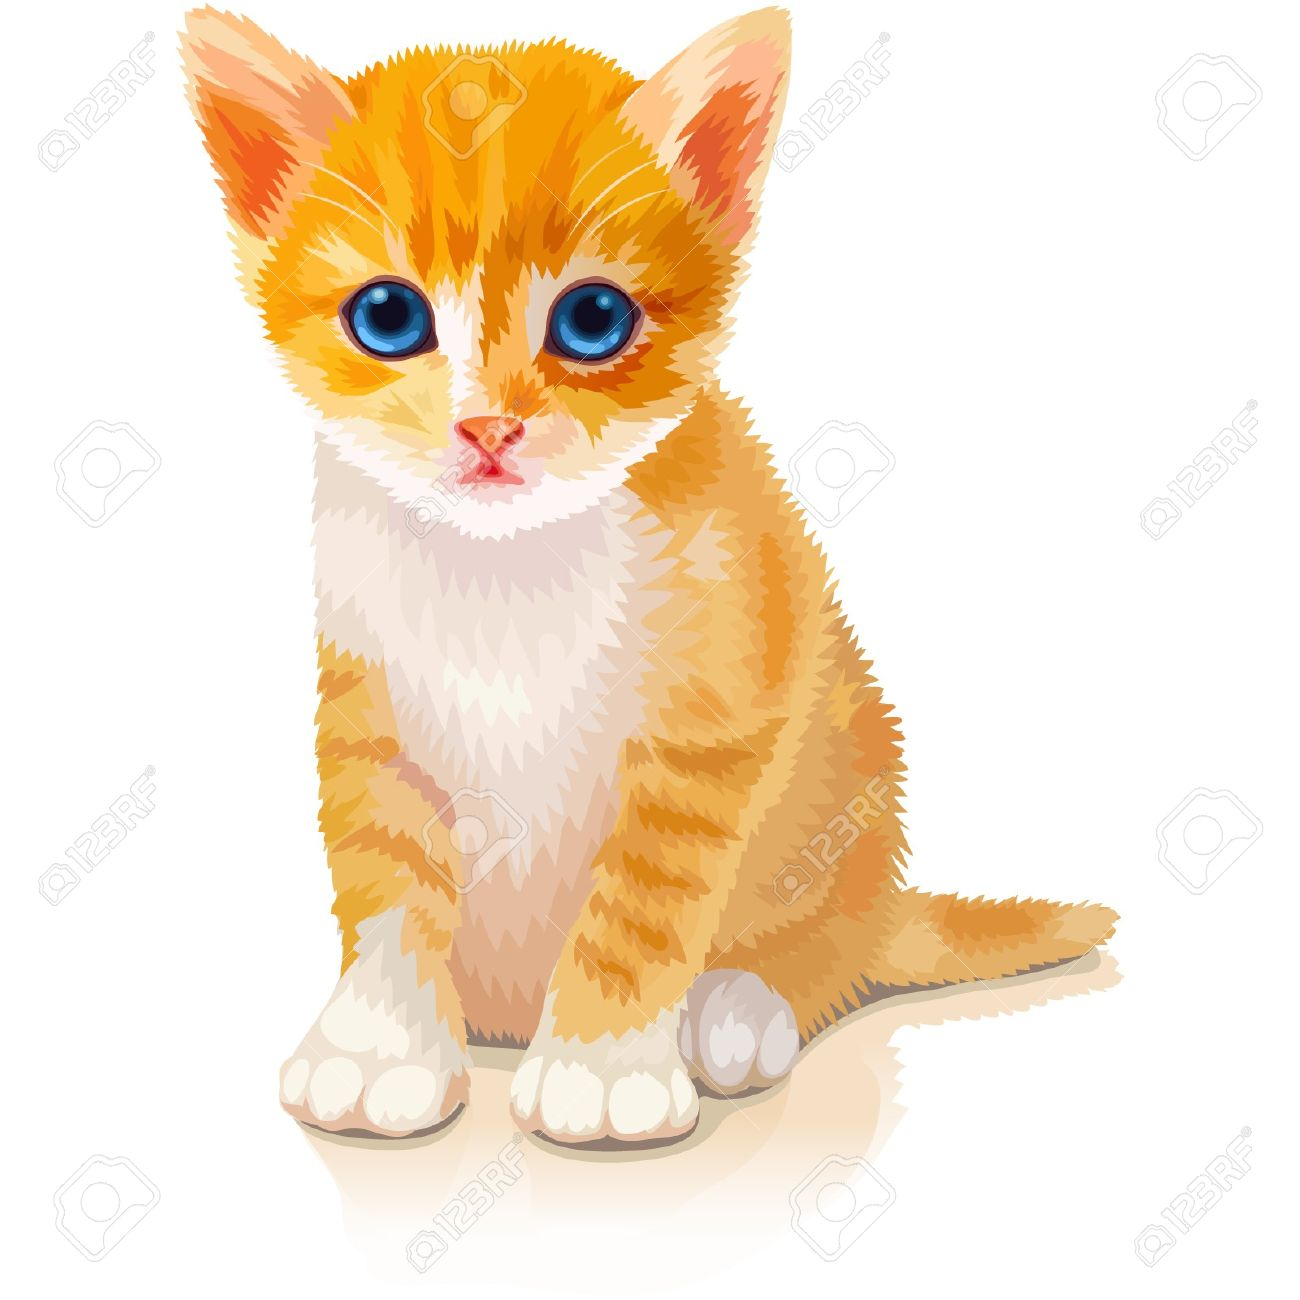 cute orange kitten royalty free cliparts vectors and stock